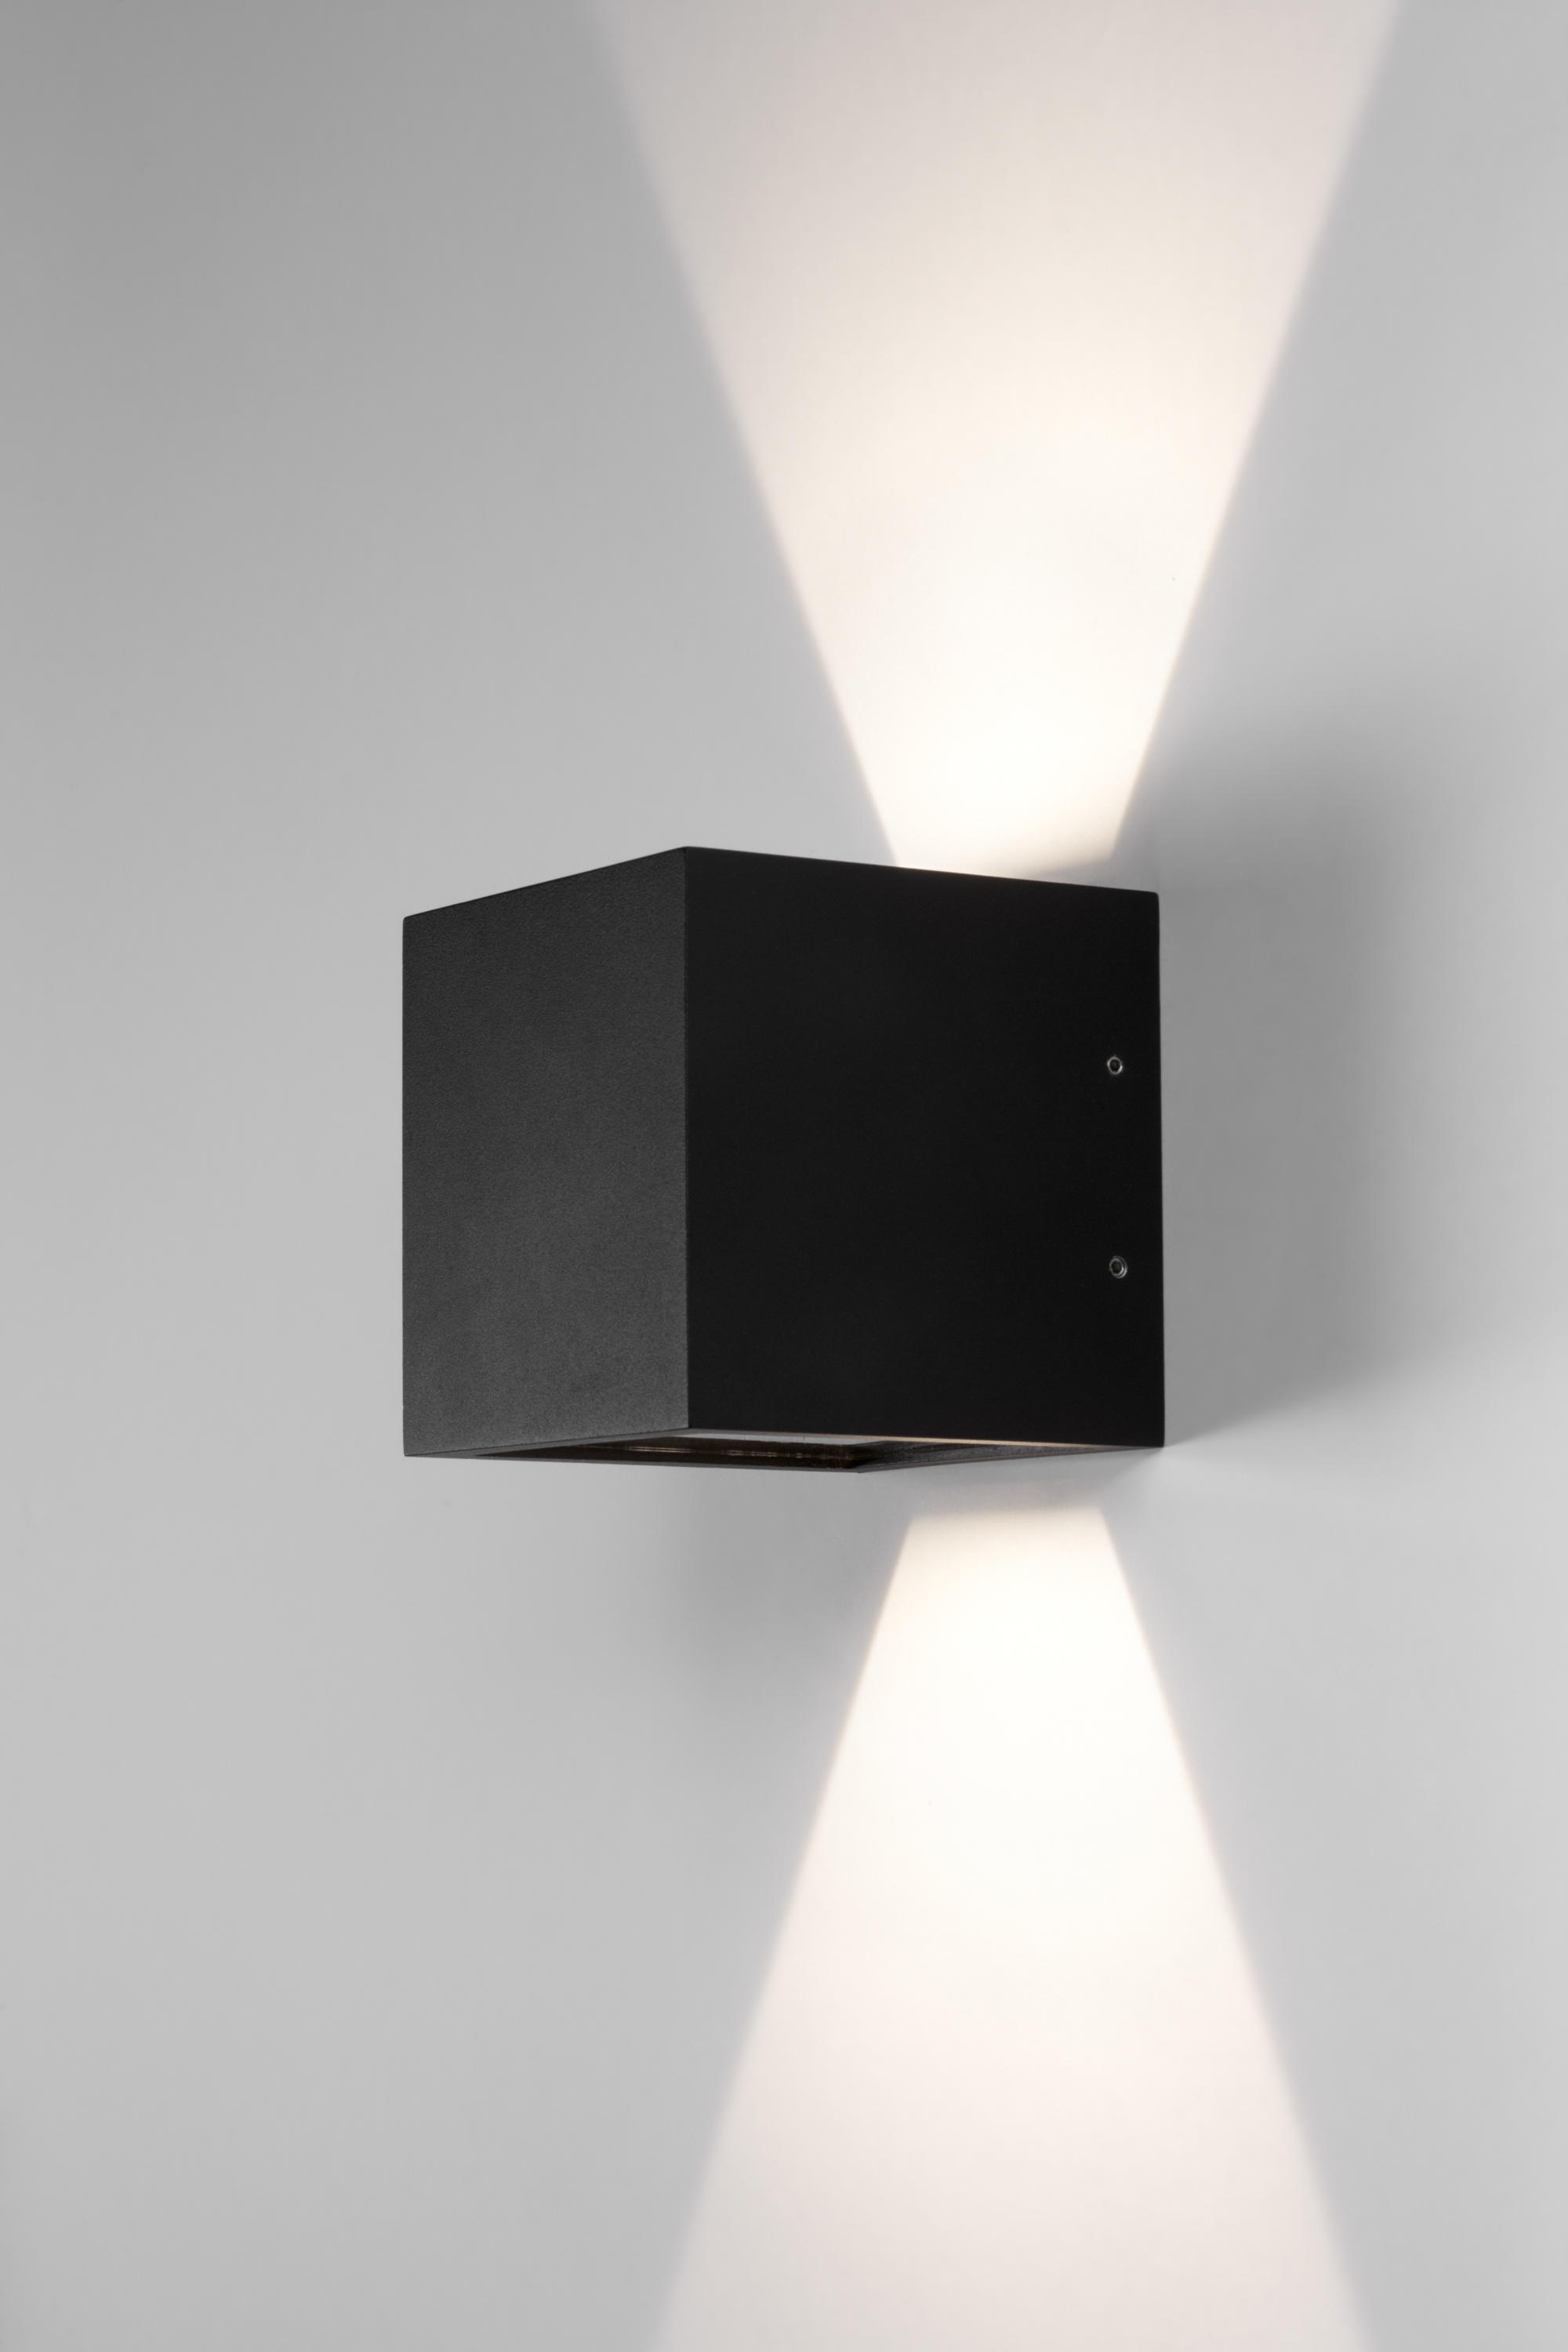 Cube led wall mounted spotlights from light point architonic cube led by light point wall mounted spotlights mozeypictures Images